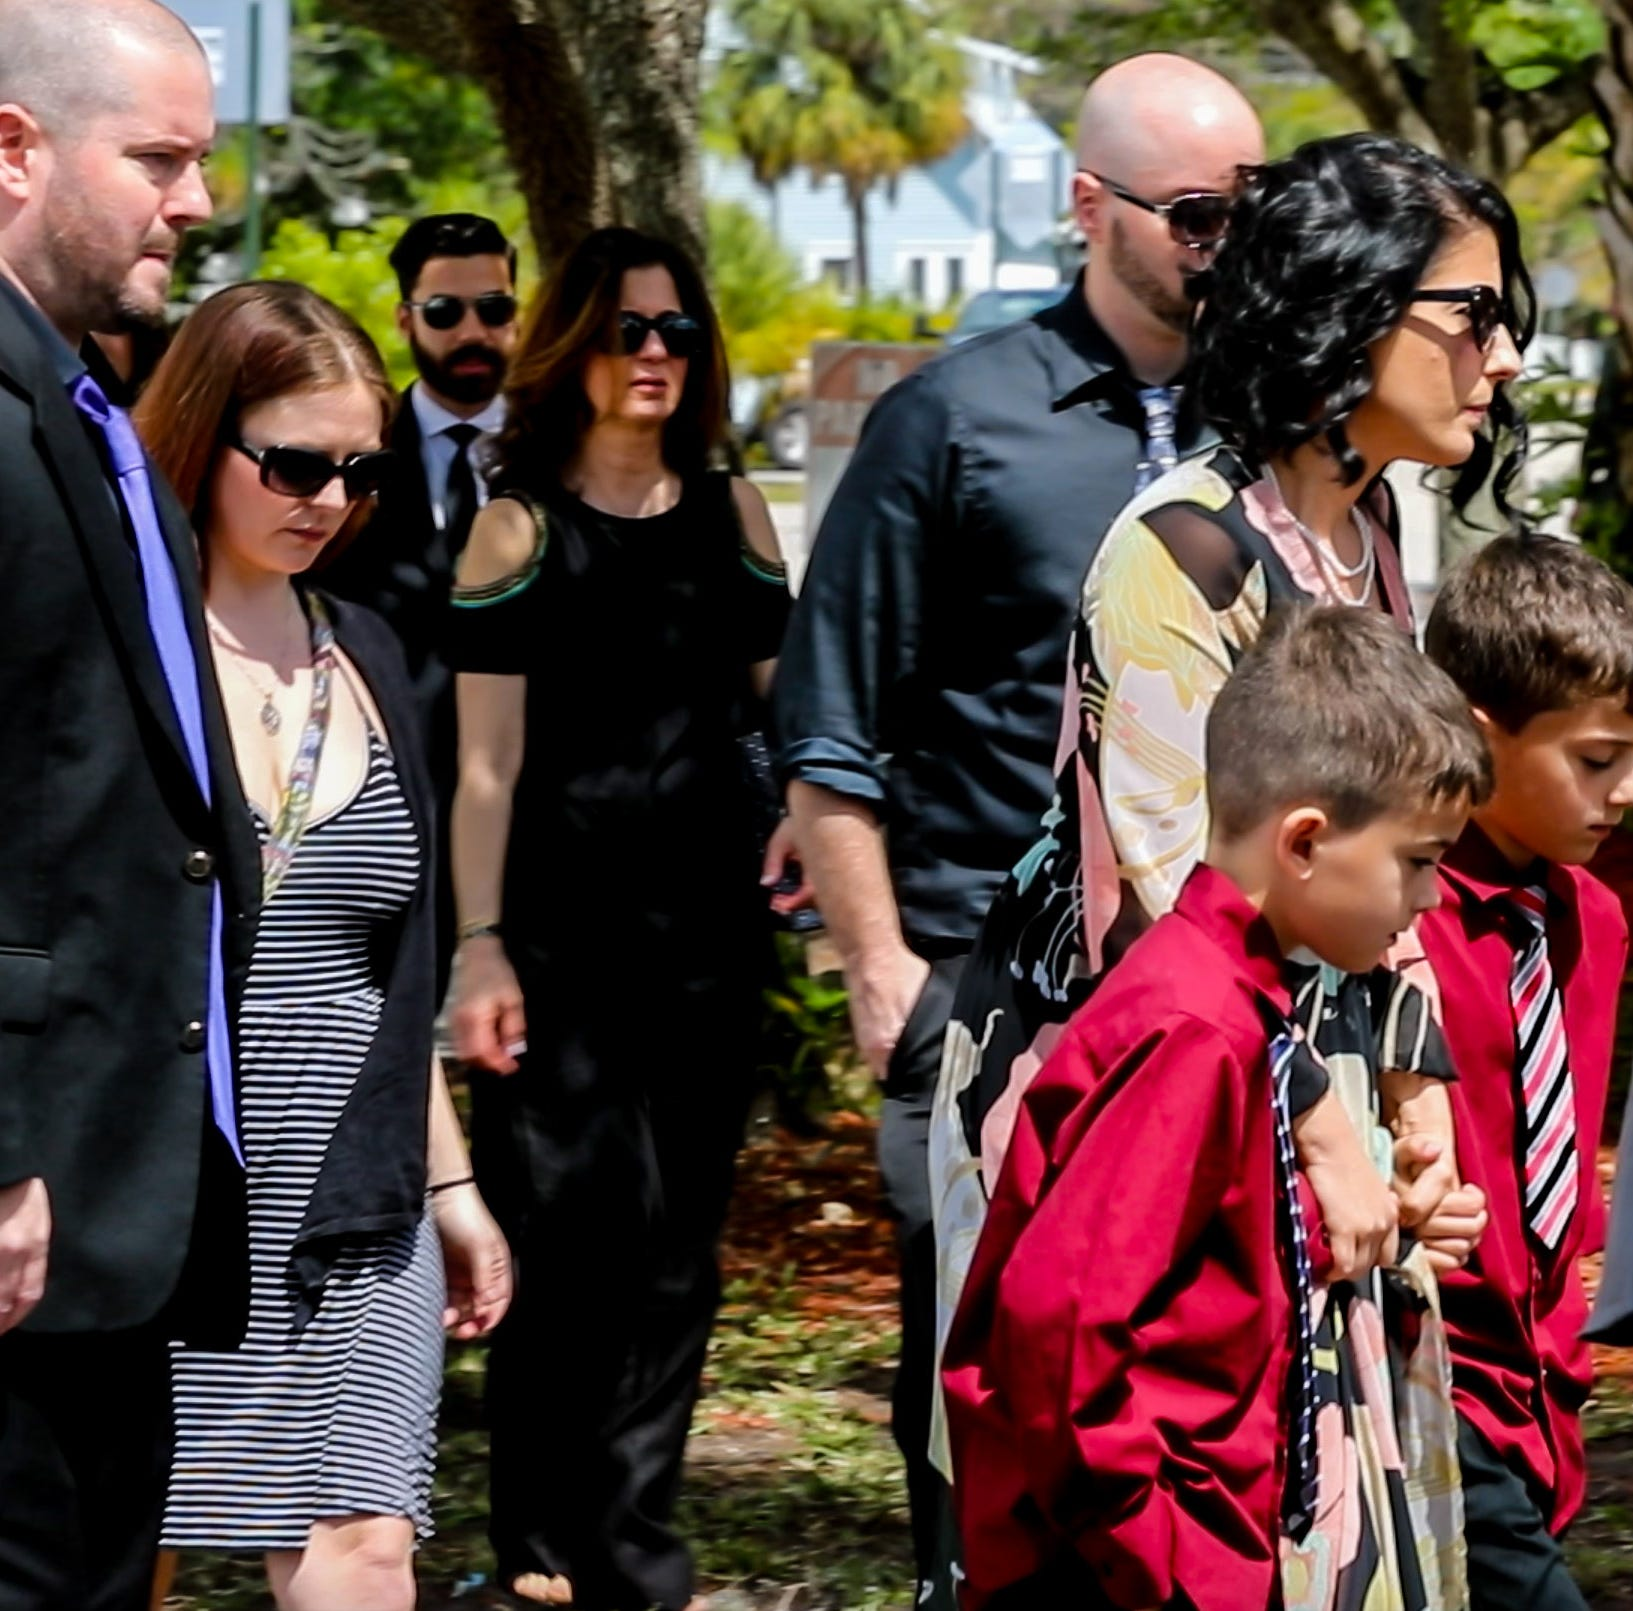 Family, loved ones honor 8-year-old Layla Aiken at memorial service